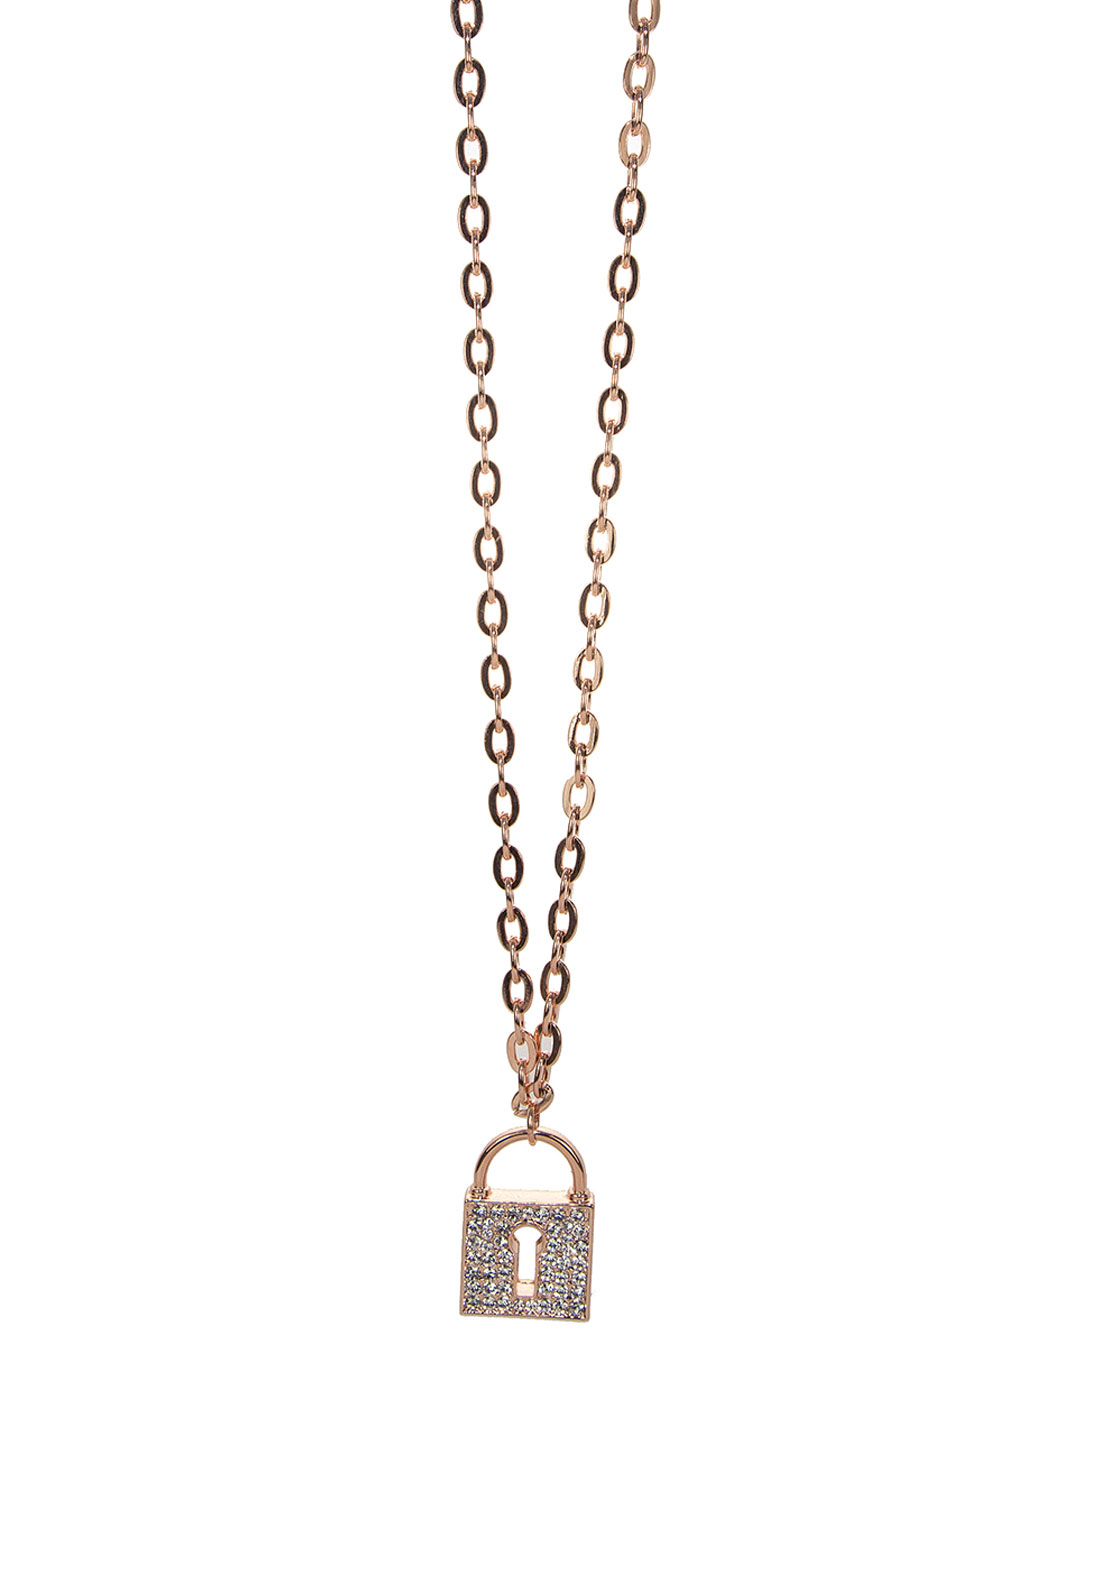 Absolute Jewellery Padlock Pendant Long Necklace